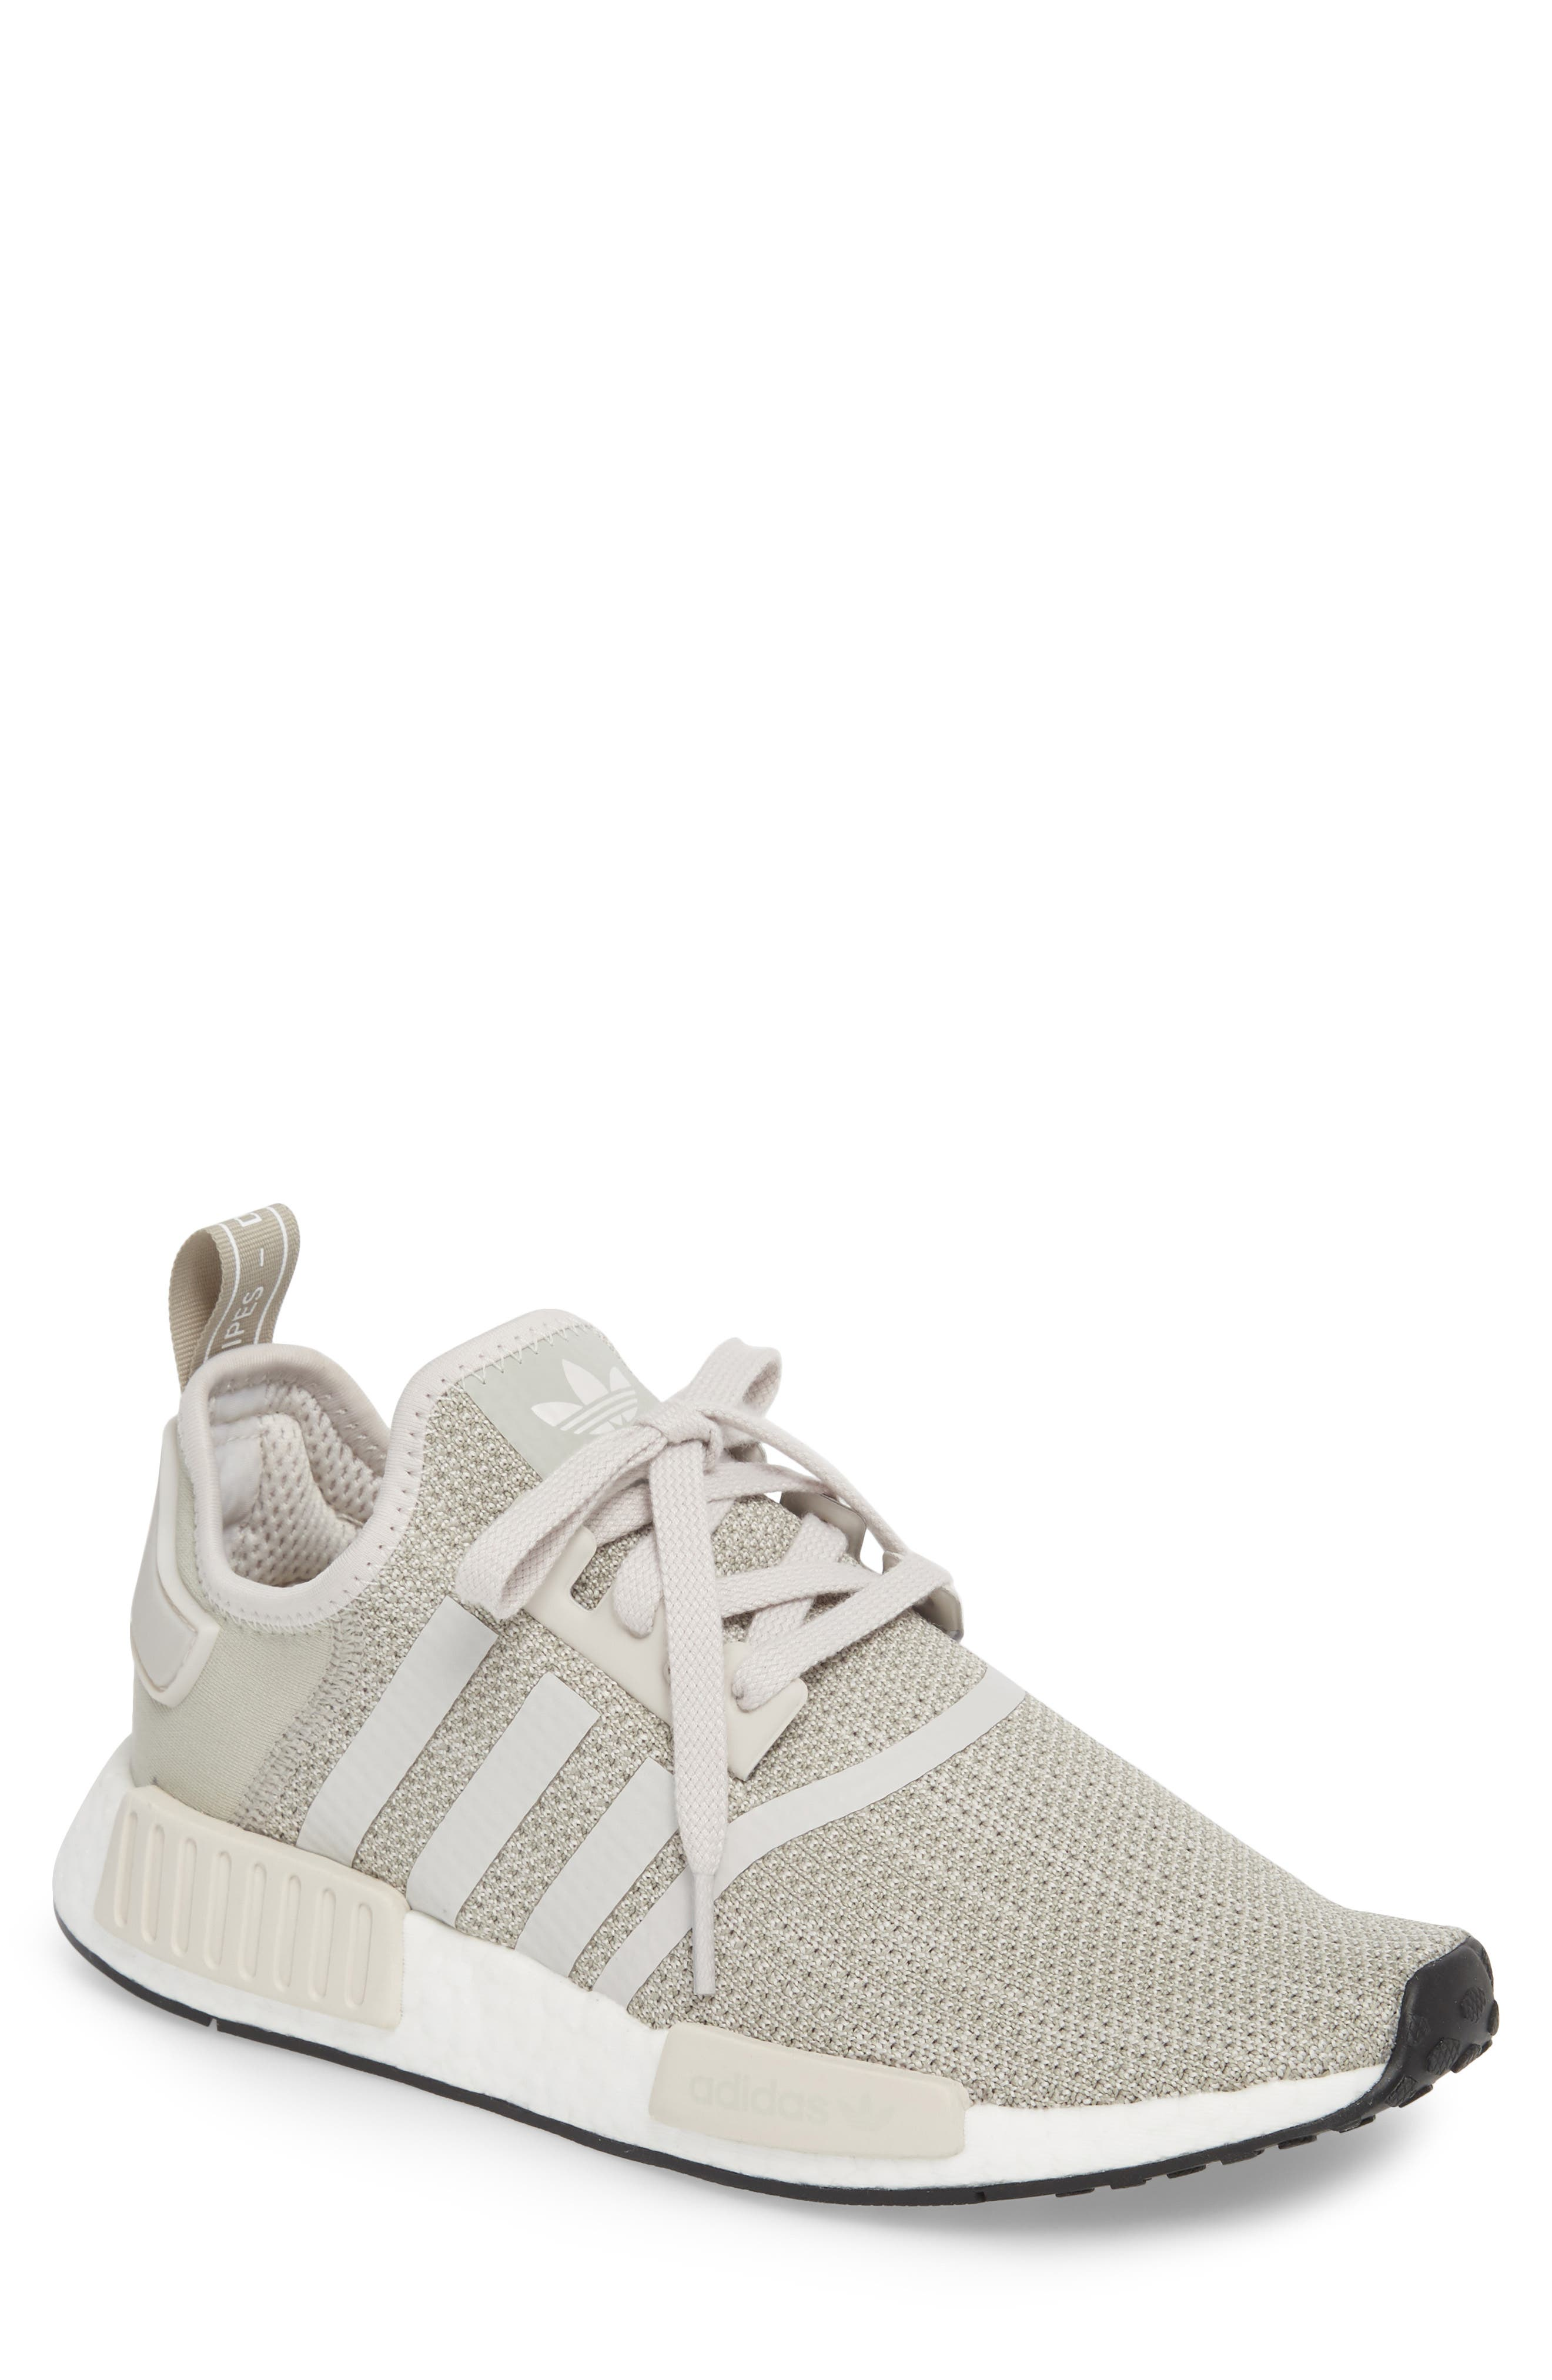 NMD_R1 Sneaker,                             Main thumbnail 1, color,                             Raw Gold/ Tech Beige/ Black